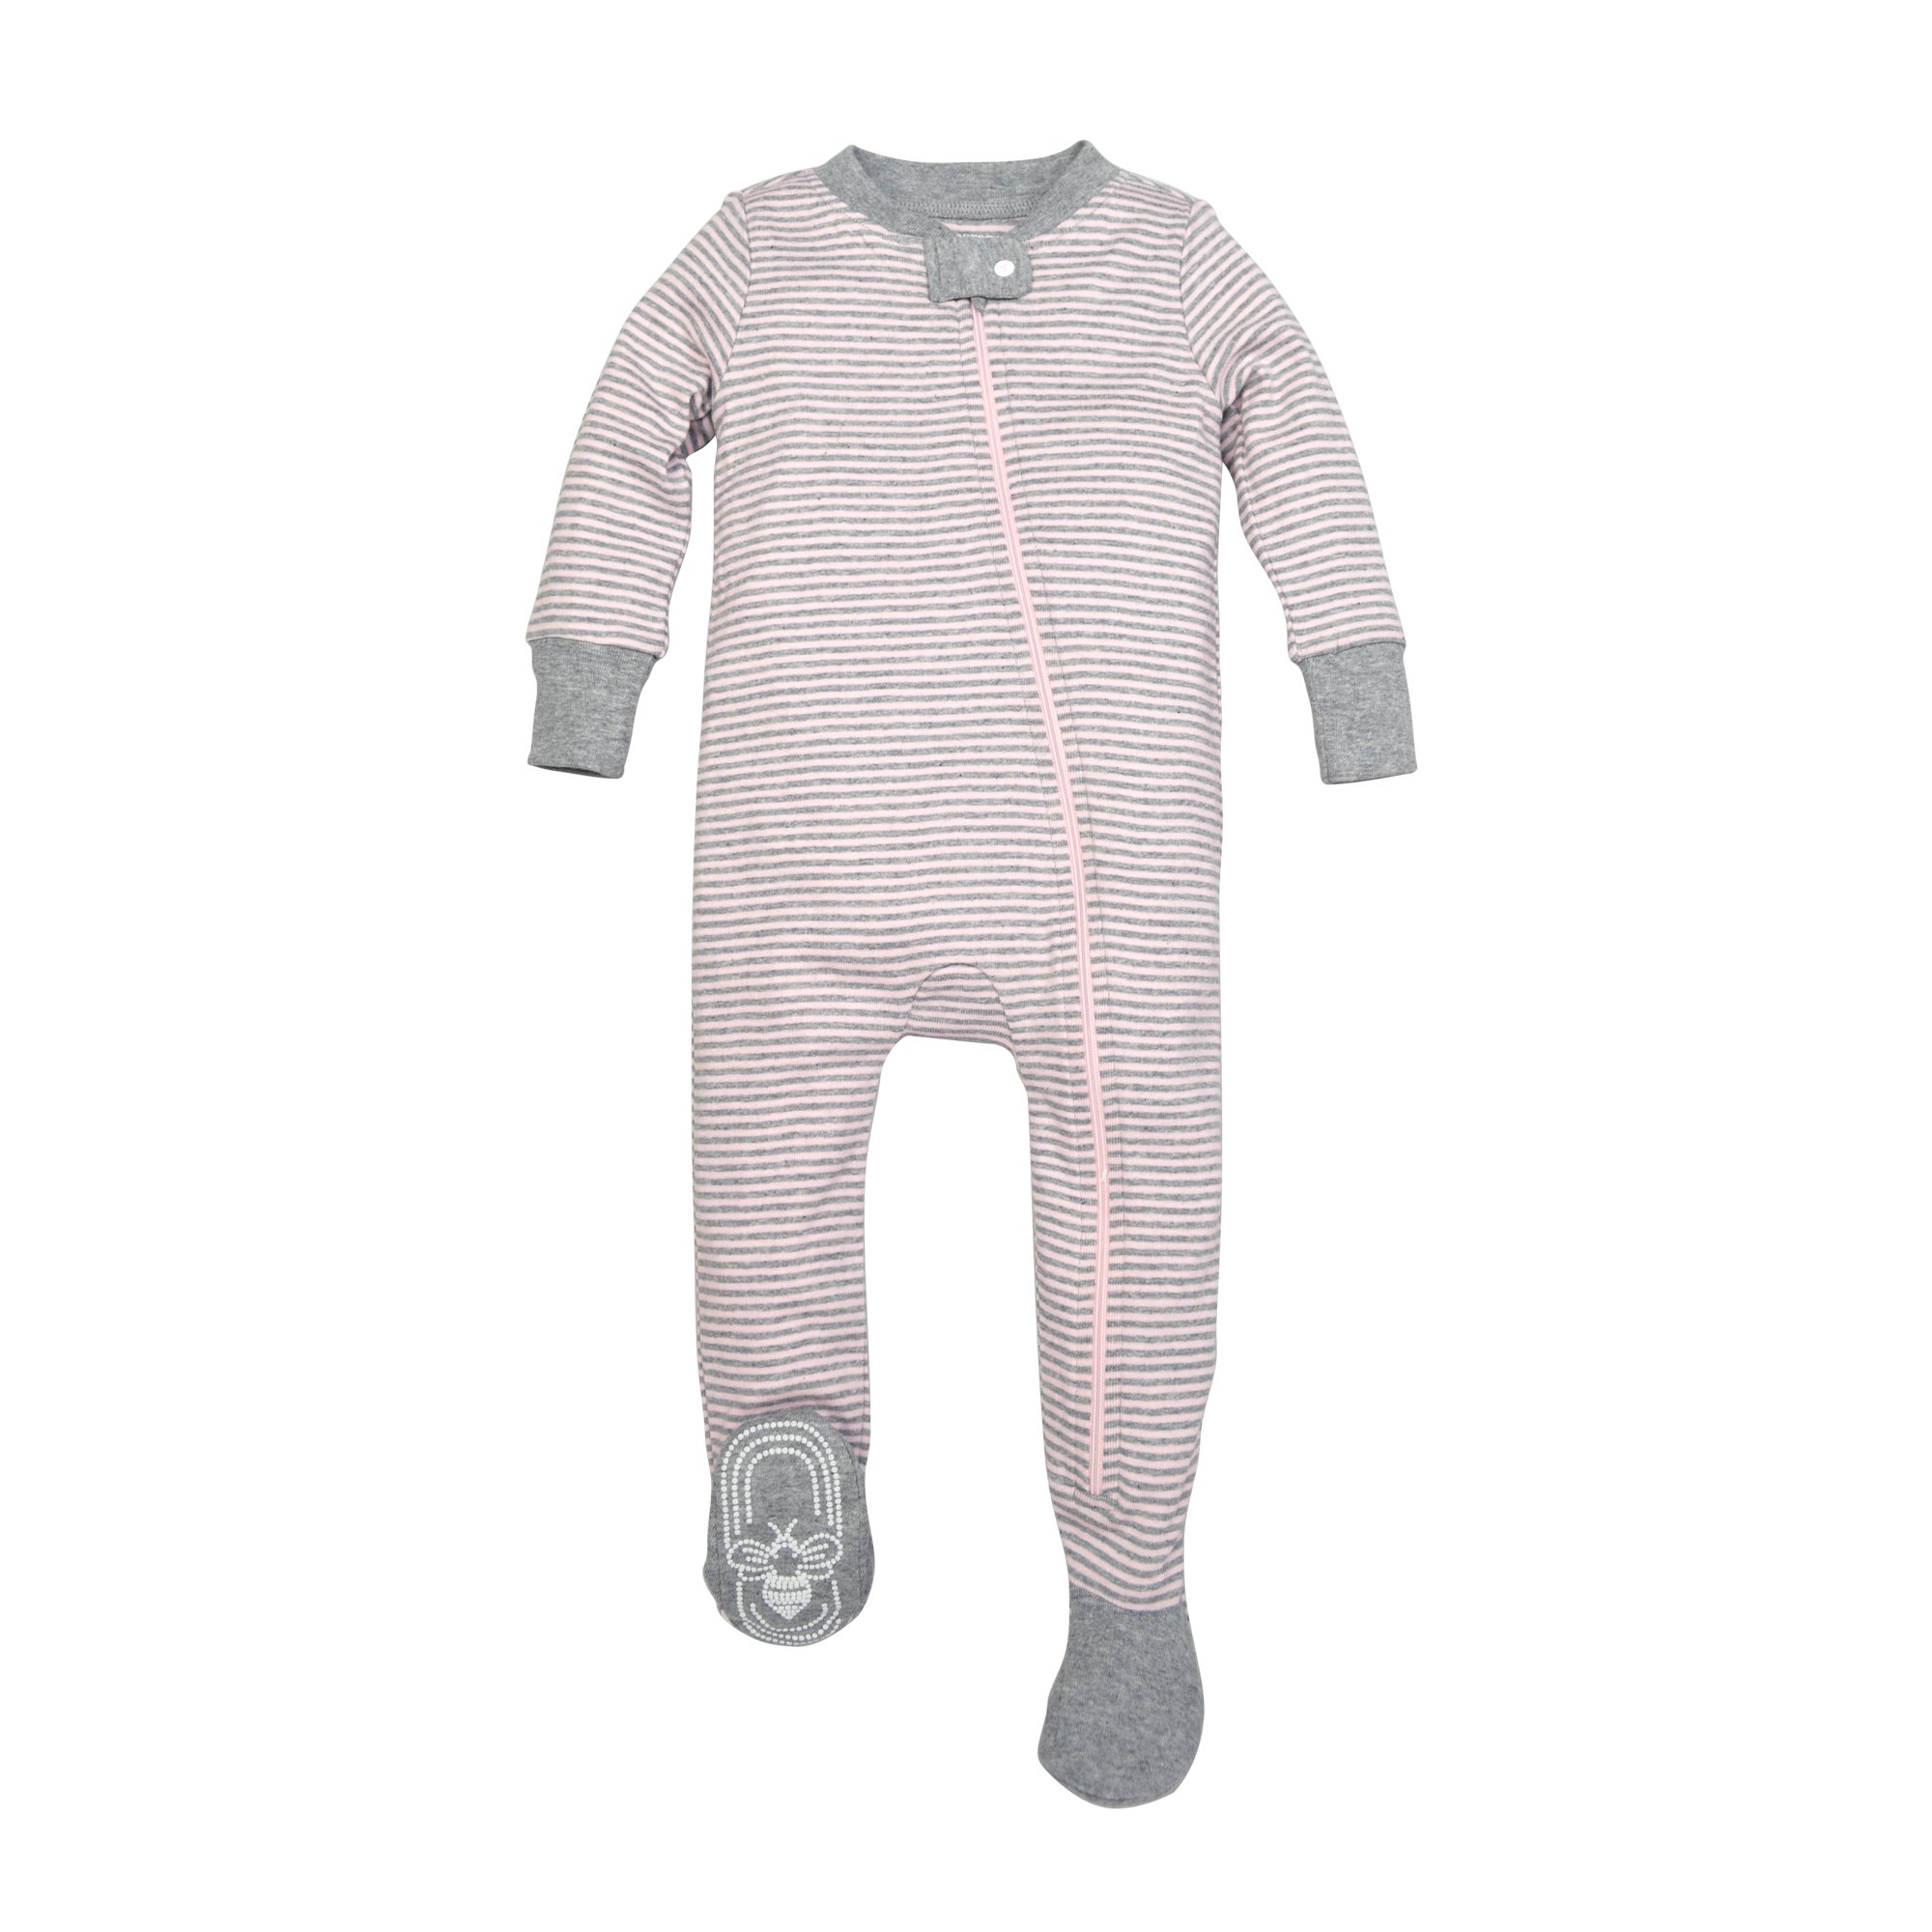 Burt's Bees Baby Baby Girls' Pajamas, Zip Front Non-Slip Footed Sleeper Pjs, 100% Organic Cotton, Blossom Classic Stripe, 12 Months